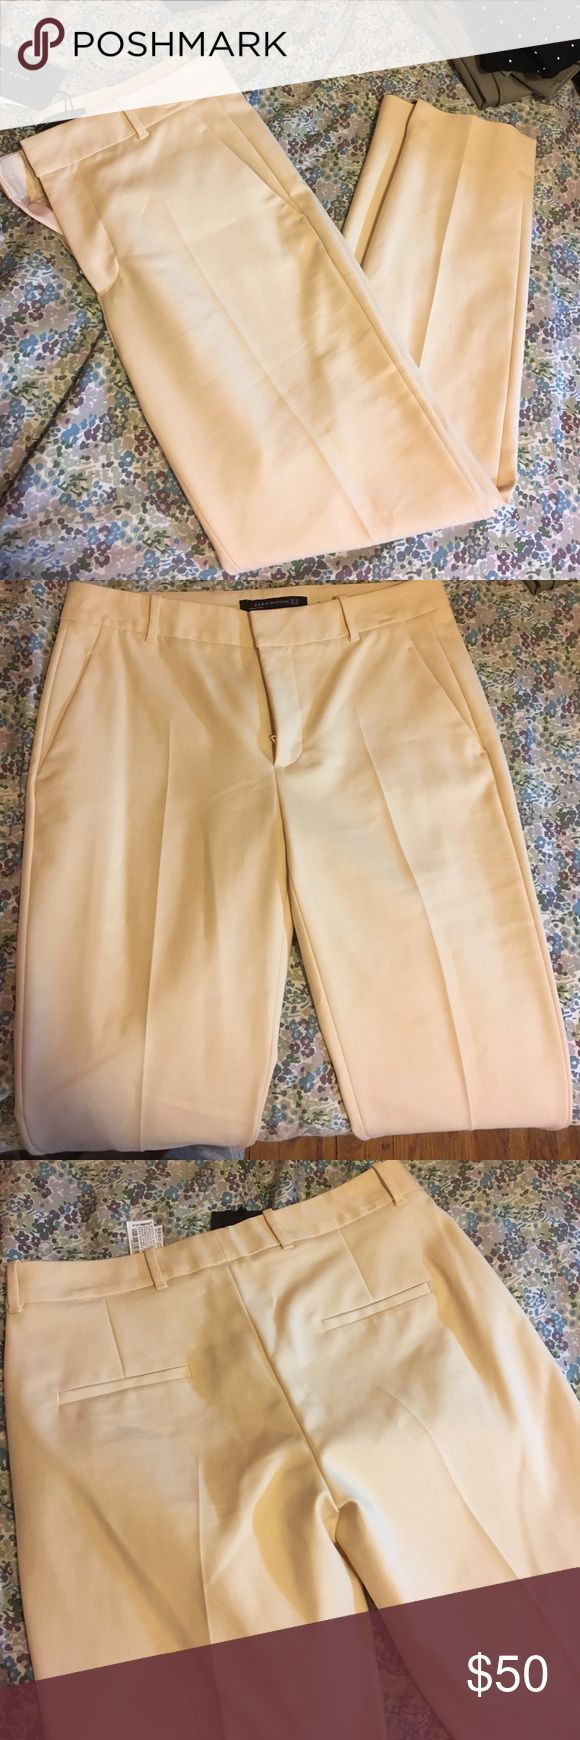 Banana Cream Trousers Banana cream colored trousers. Never before worn. Super soft and perfect for work/ occasion, even casual with some flats and a pullover. I would say these fit like a size 6 Zara Pants Trousers